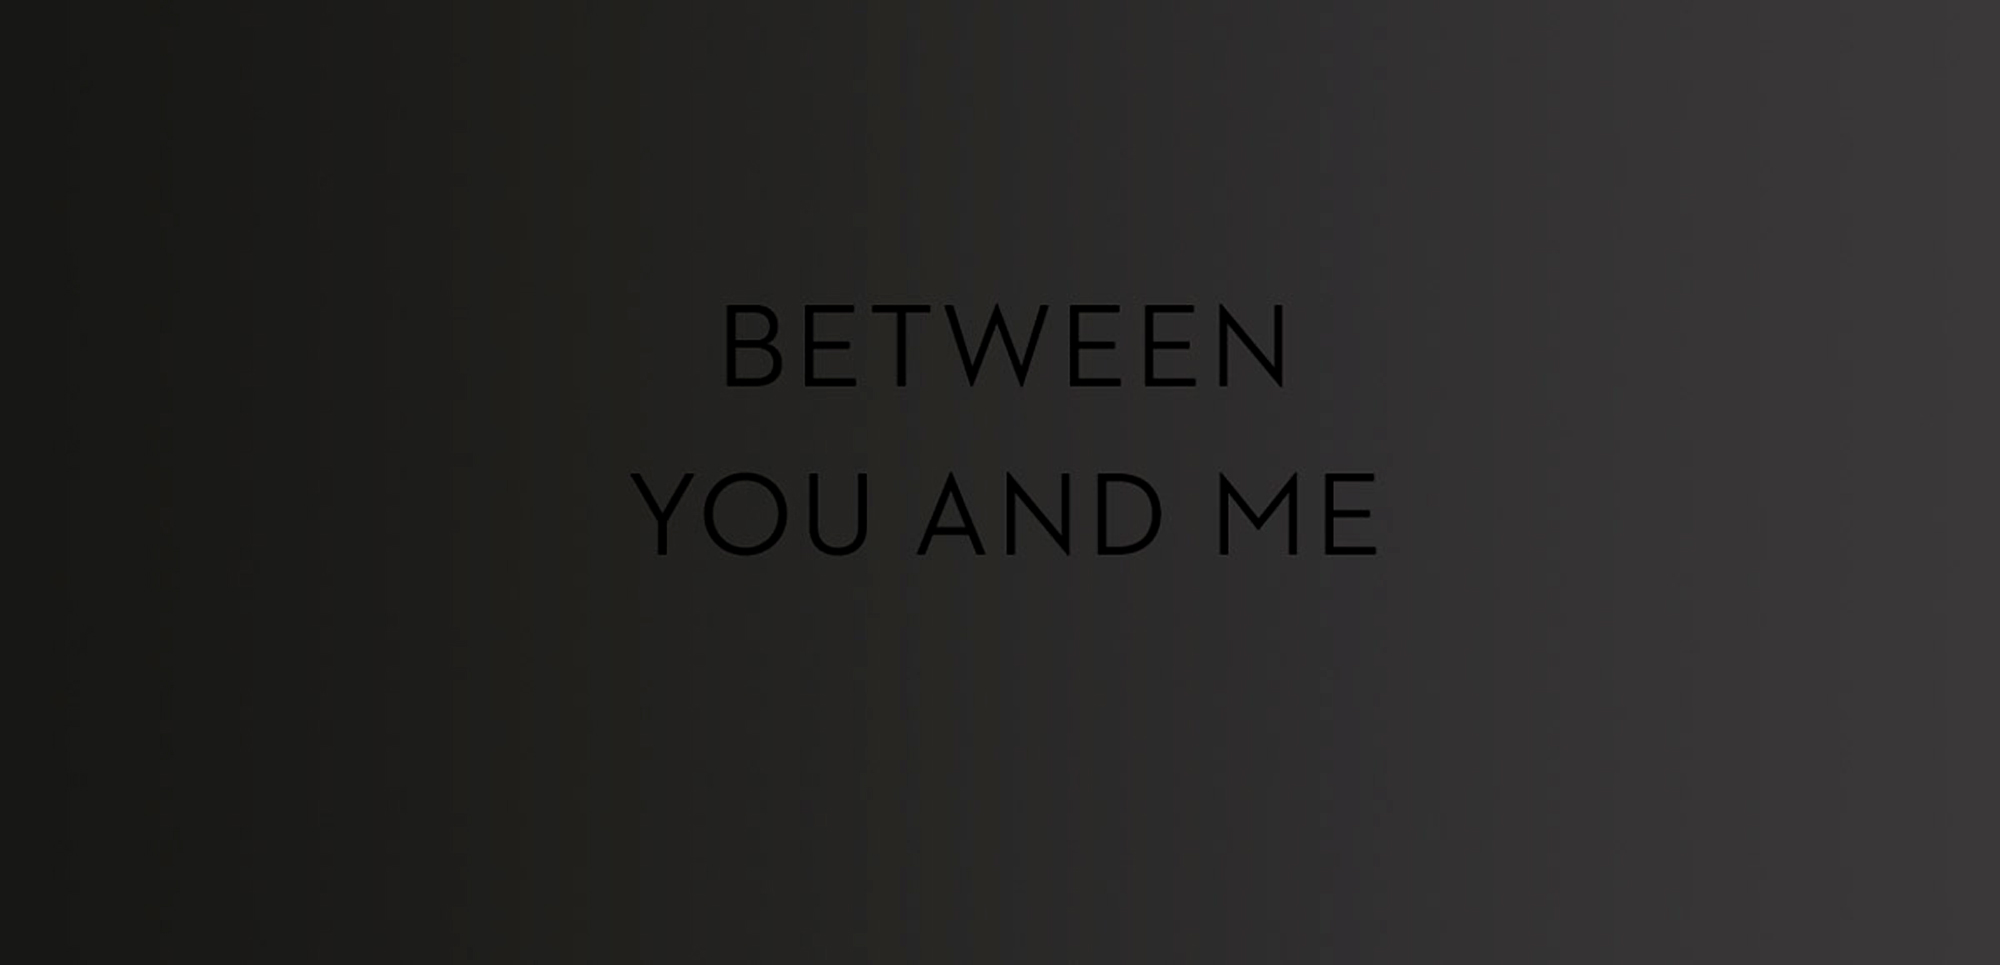 minigram_between_you_and_me_2000px